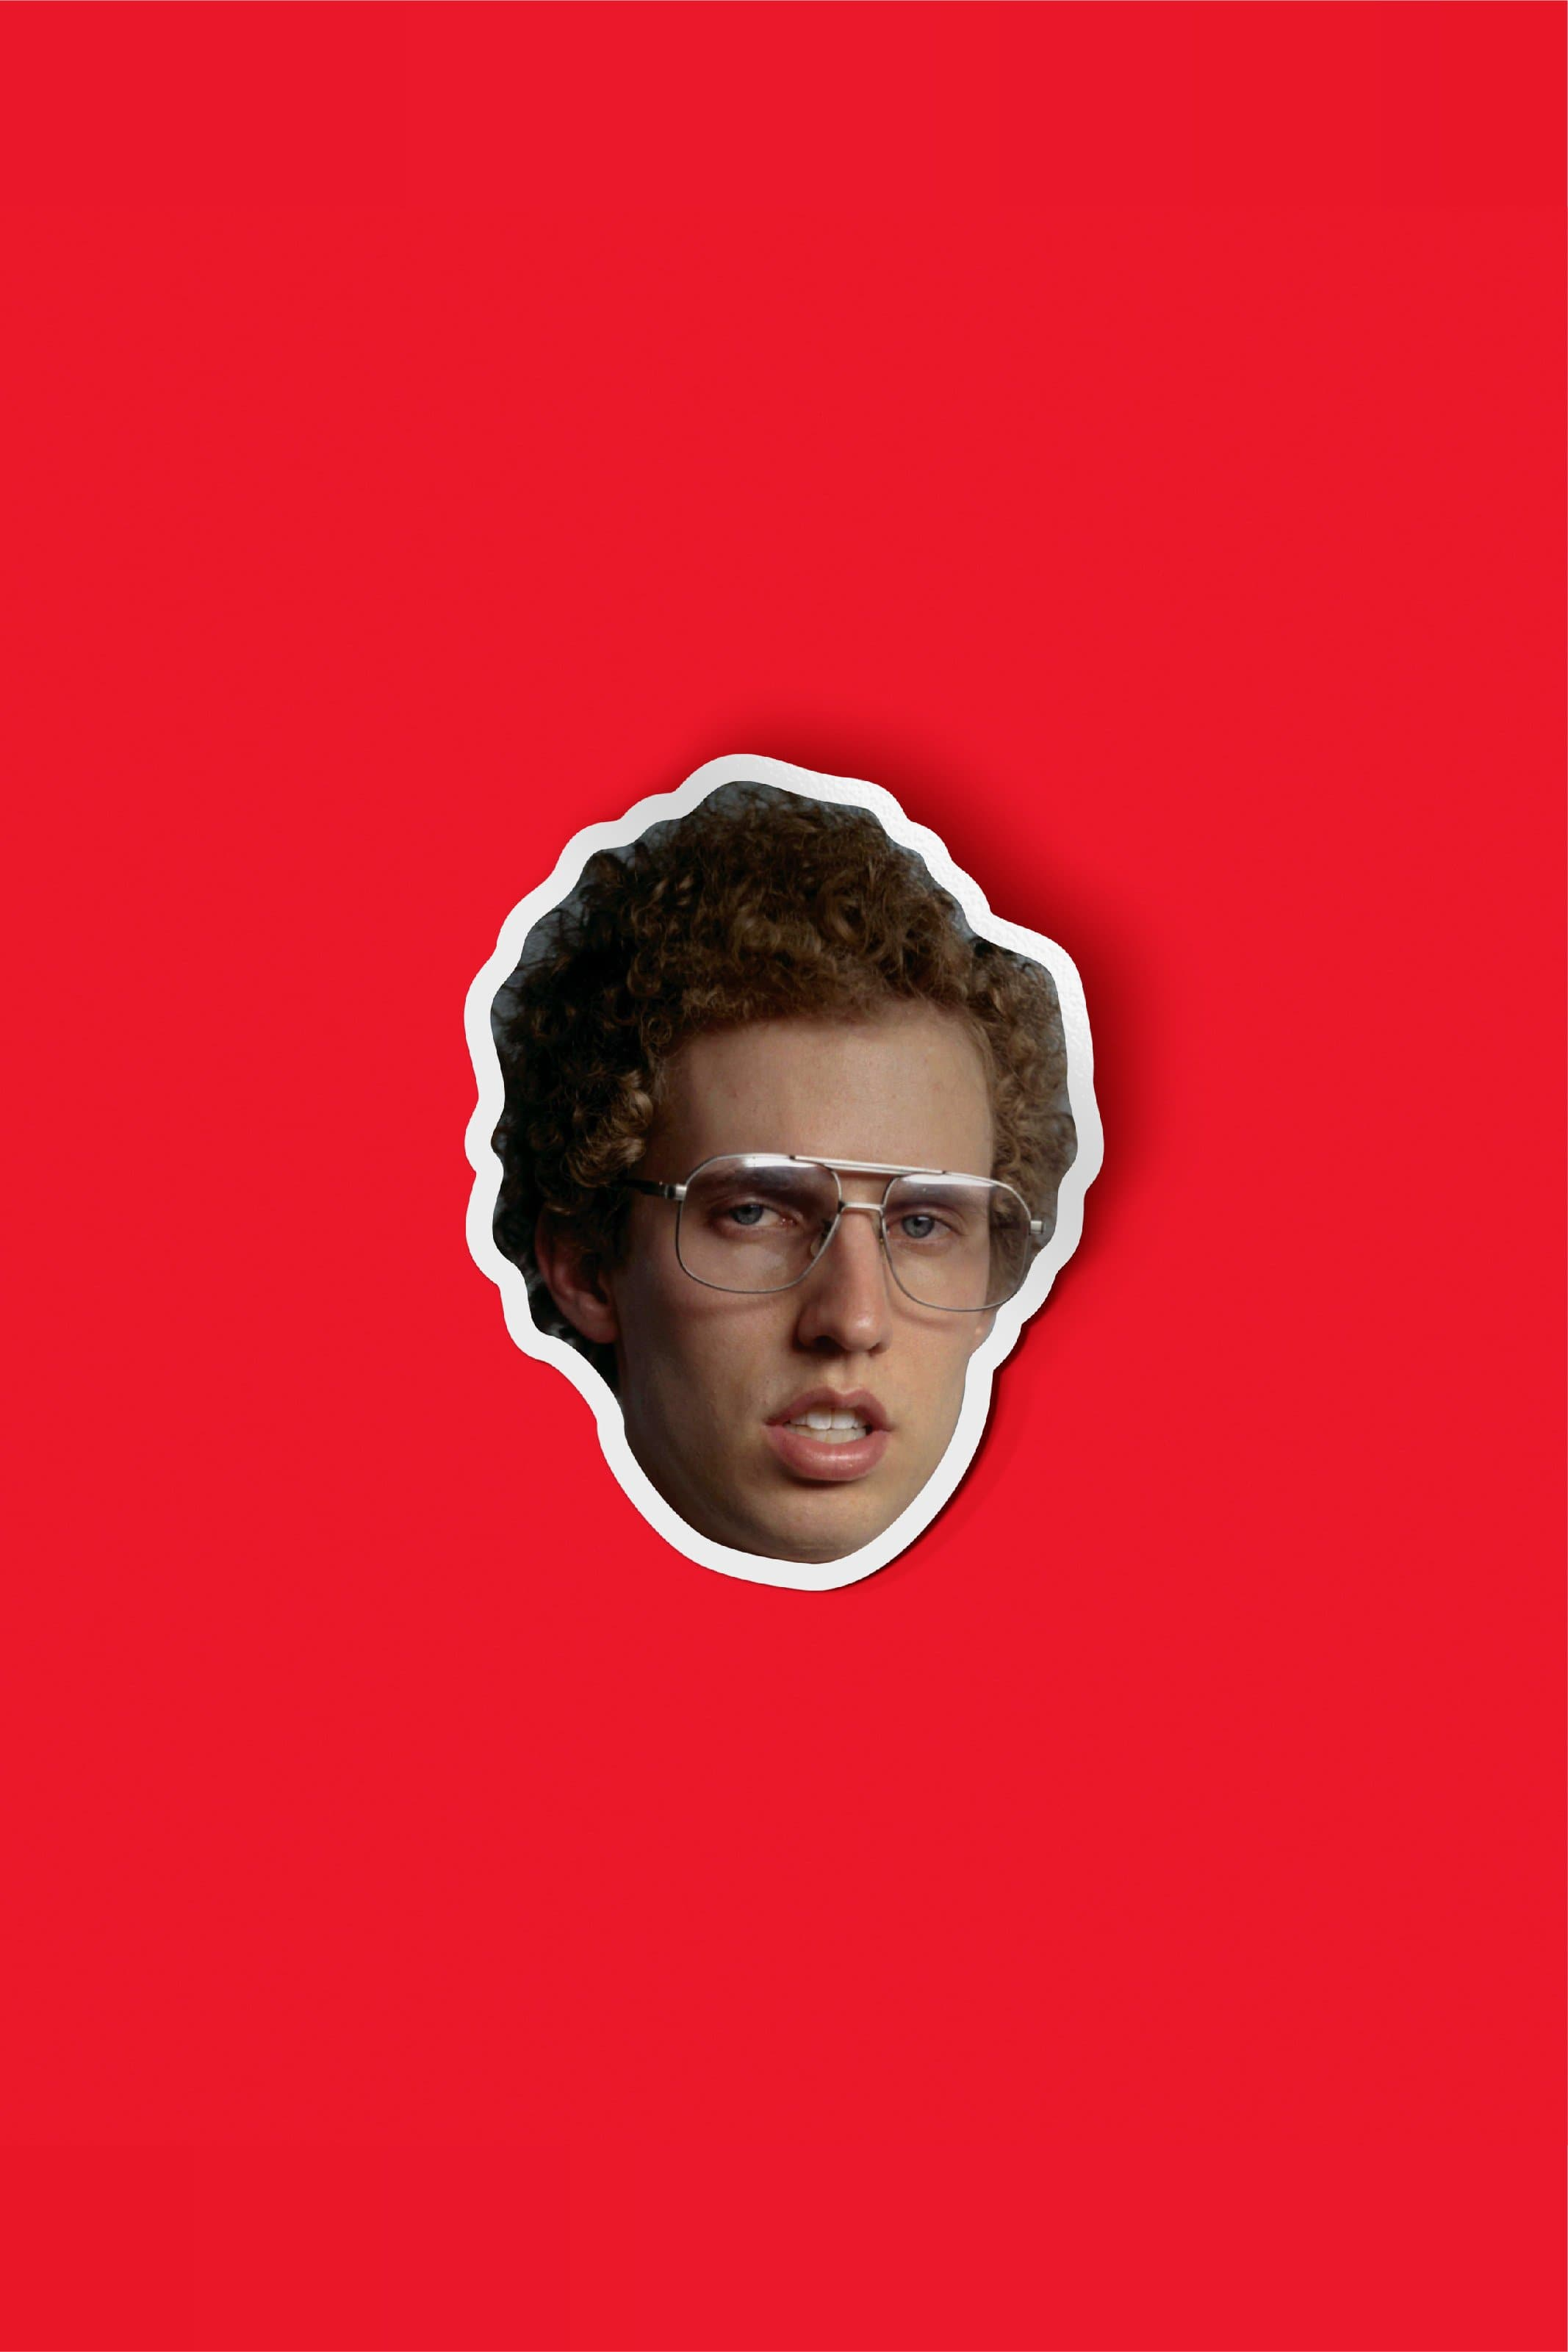 Napoleon Dynamite Face Sticker